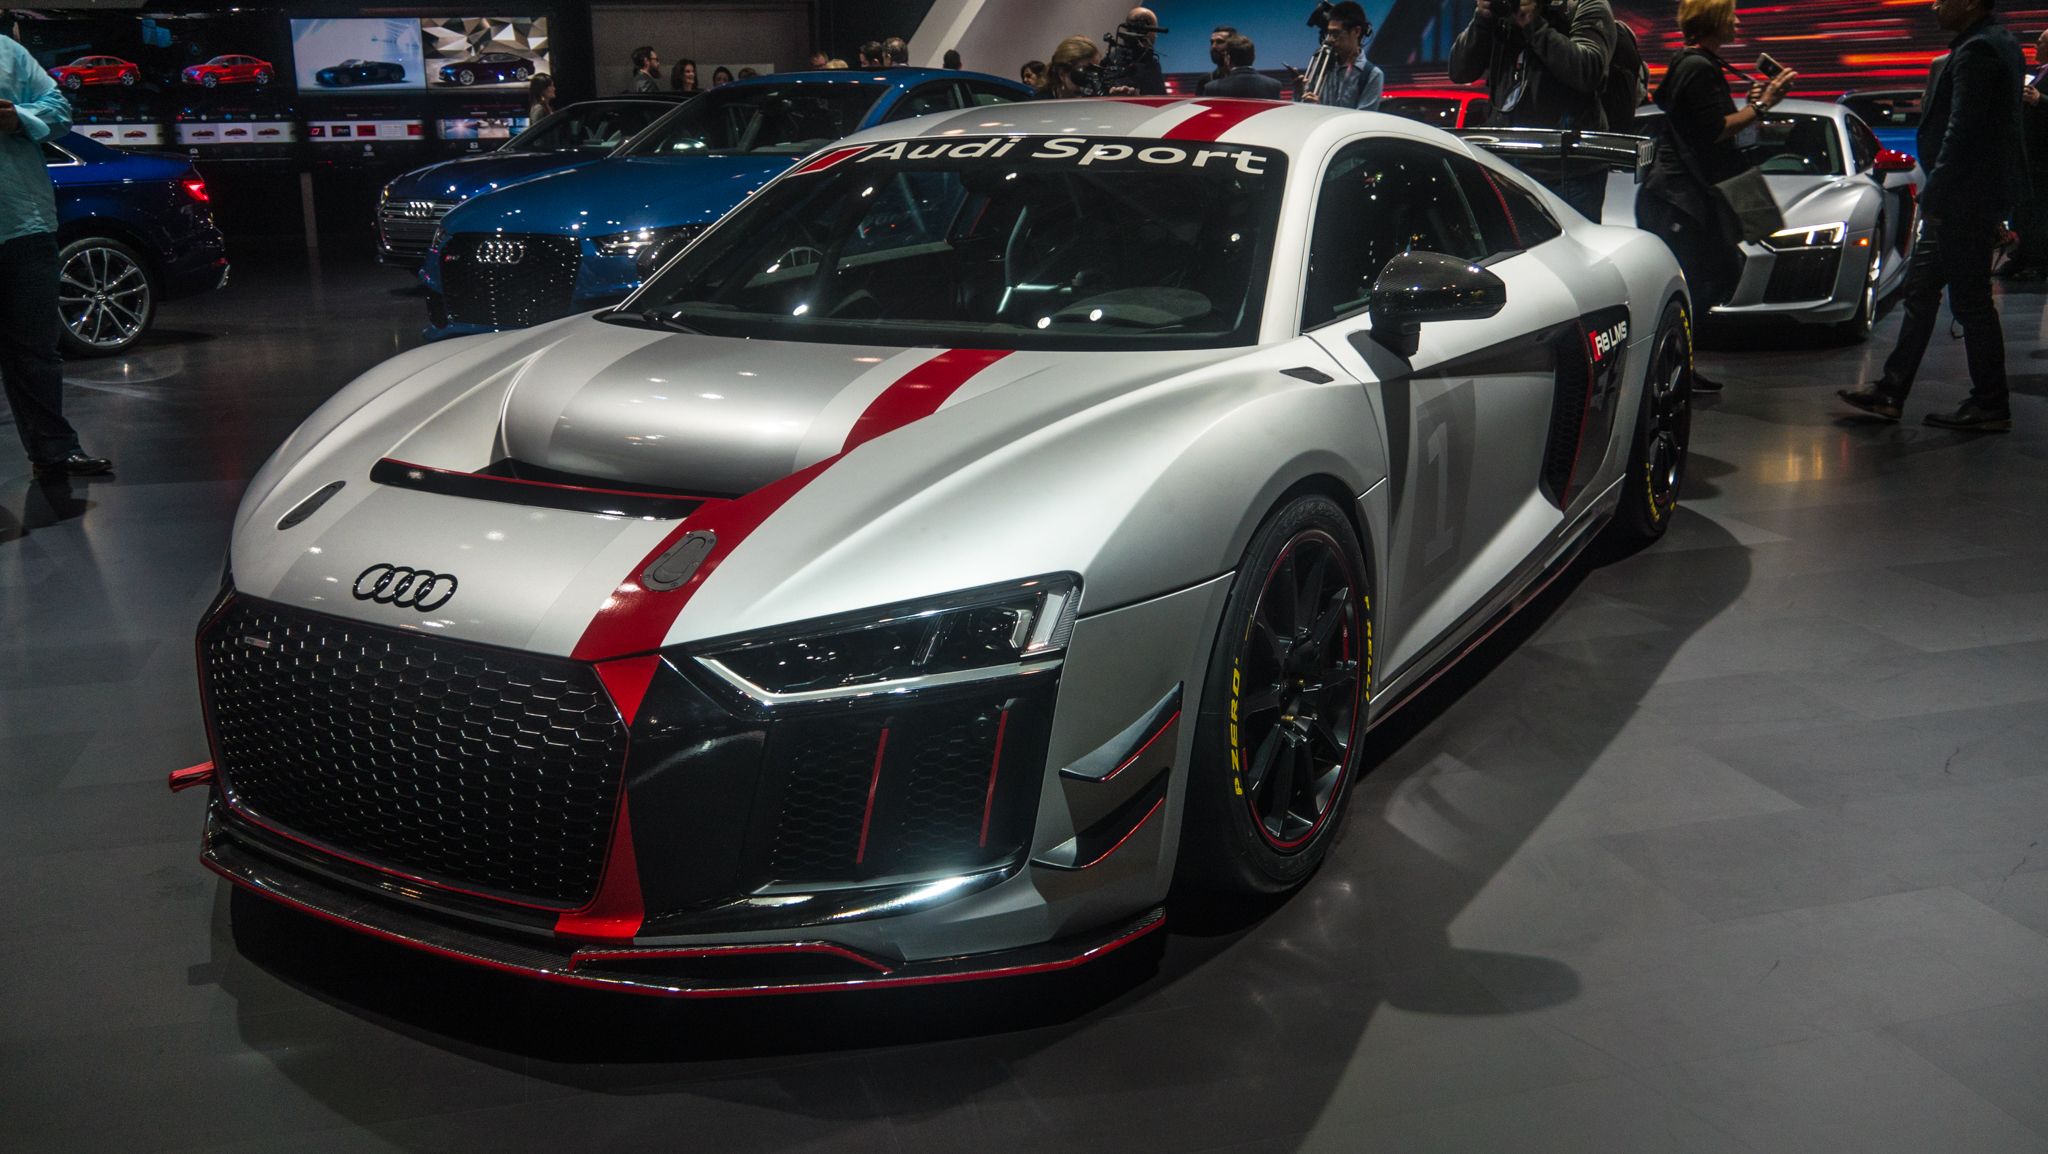 Audi Sports new GT4 race car was star of its NY International